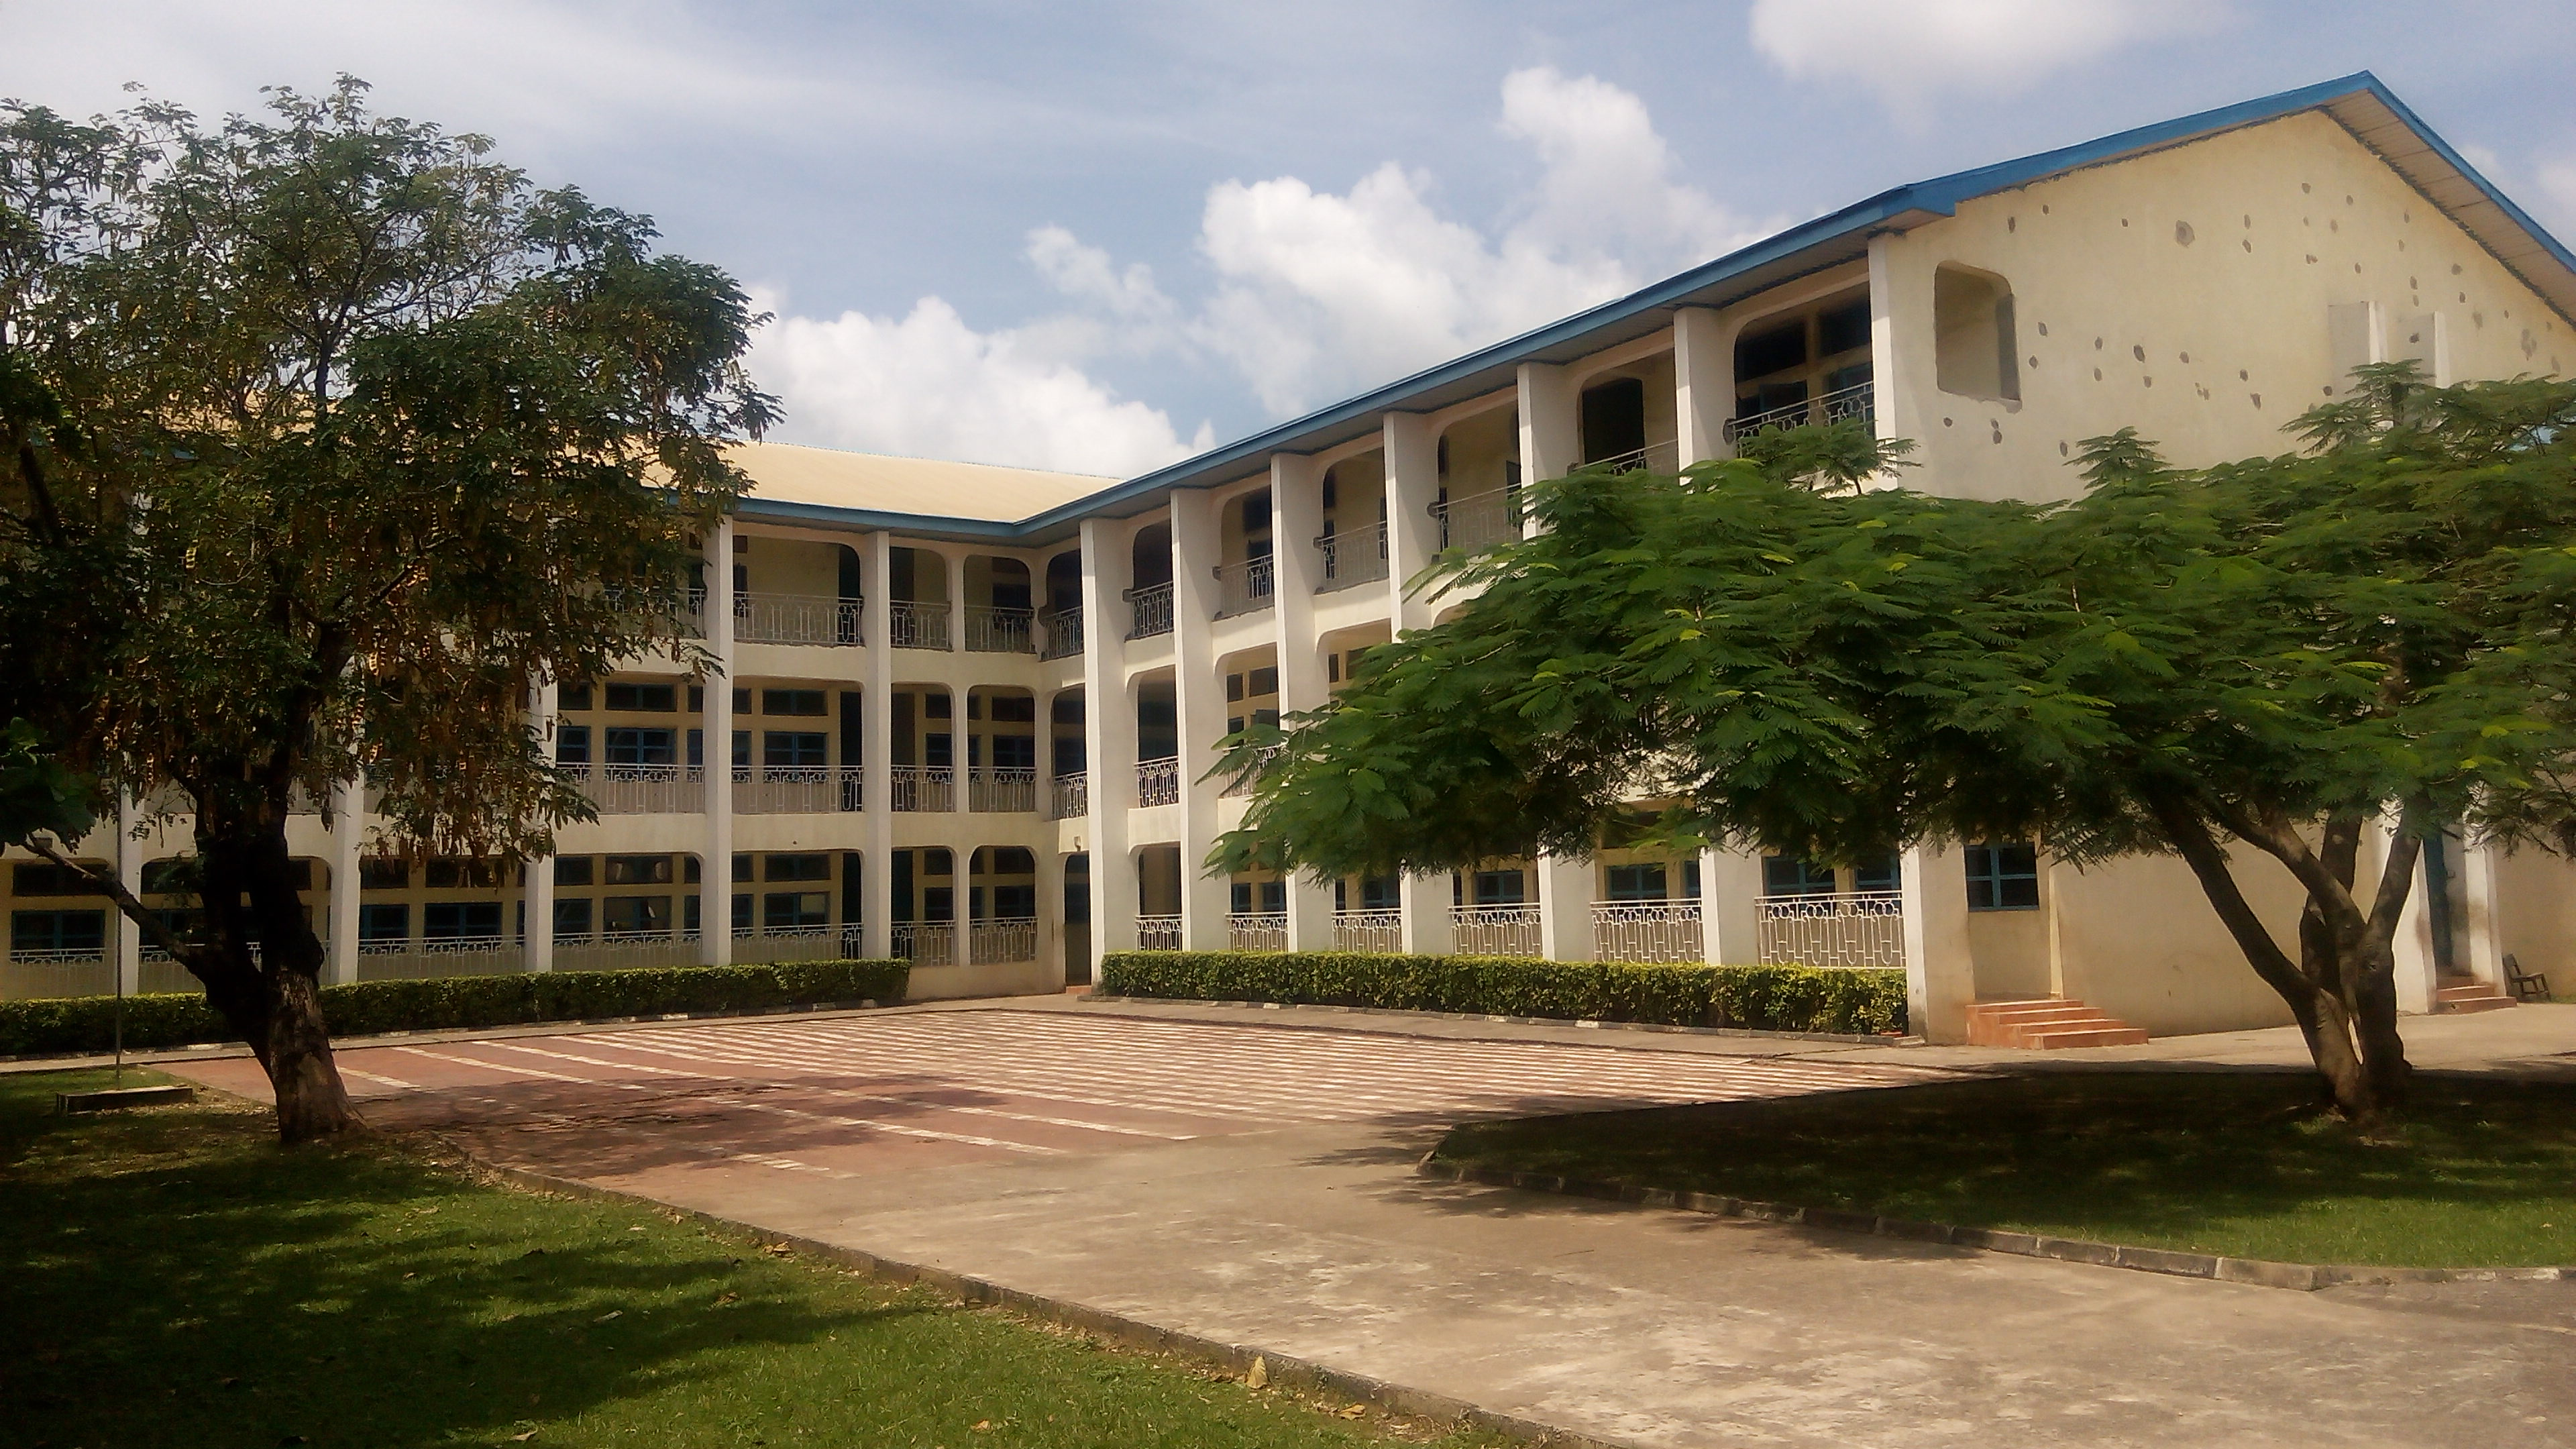 The Home of World Class Students